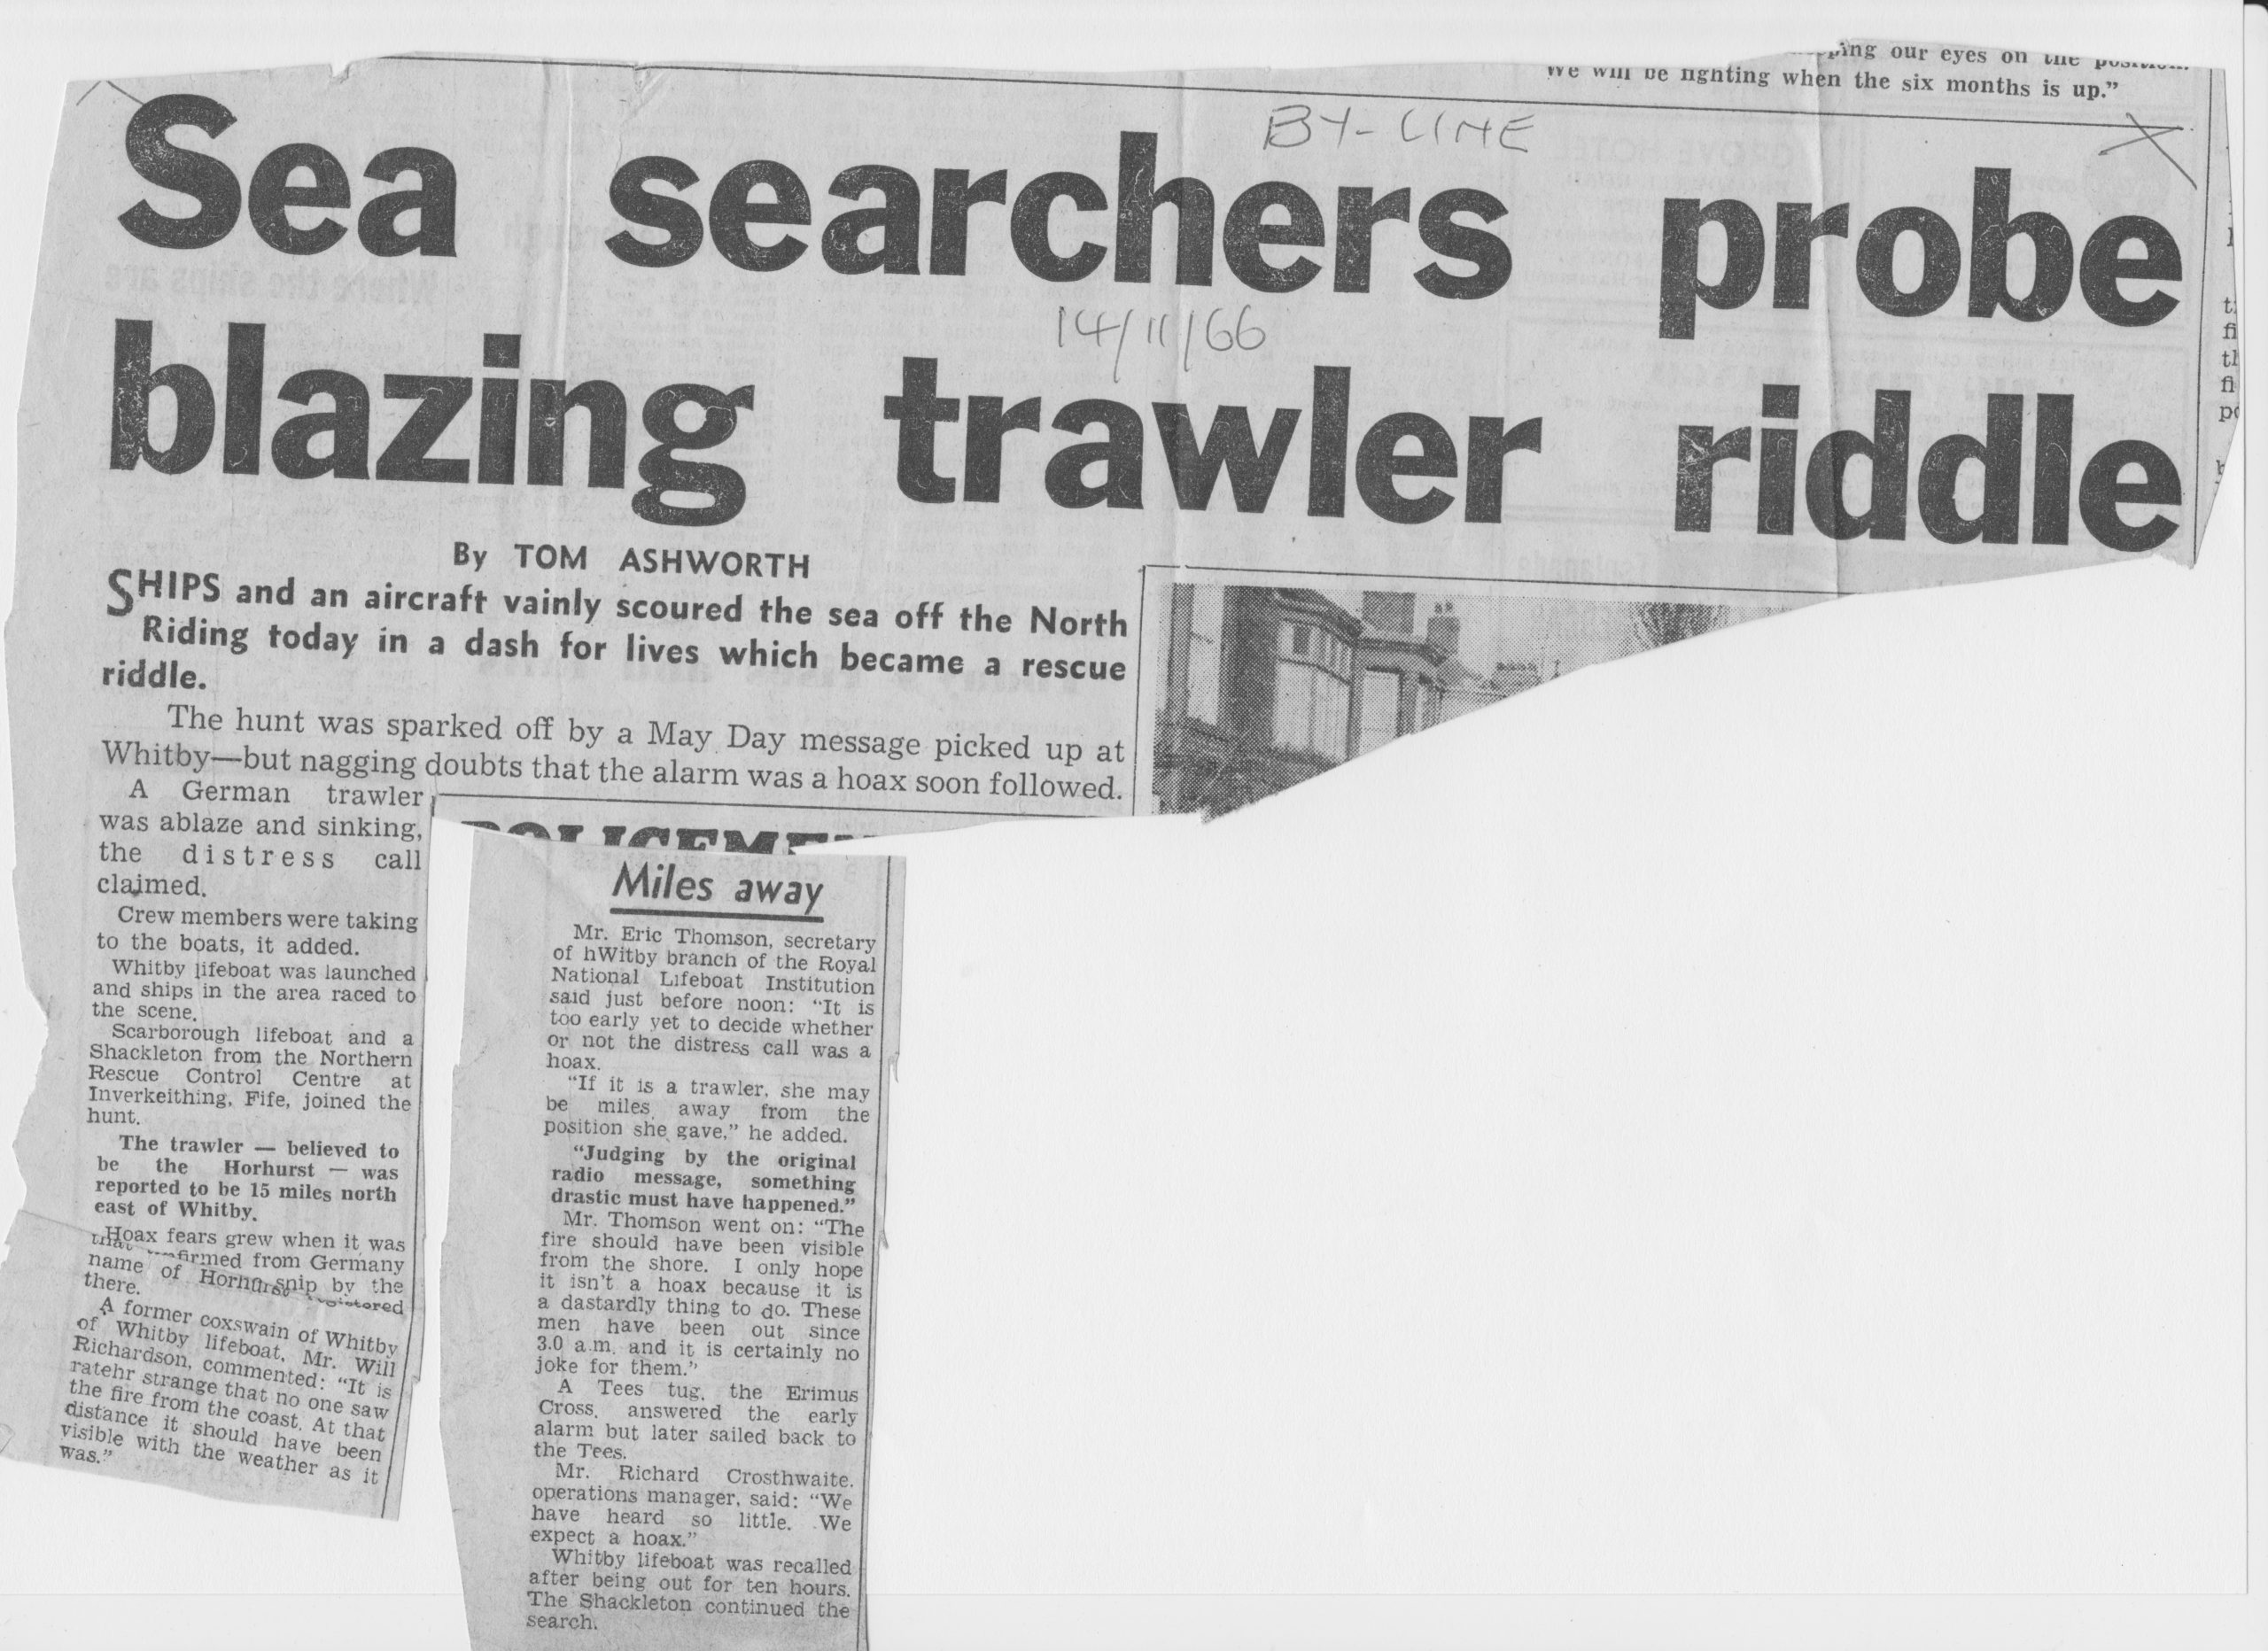 Major sea search for blazing trawler finds nothing